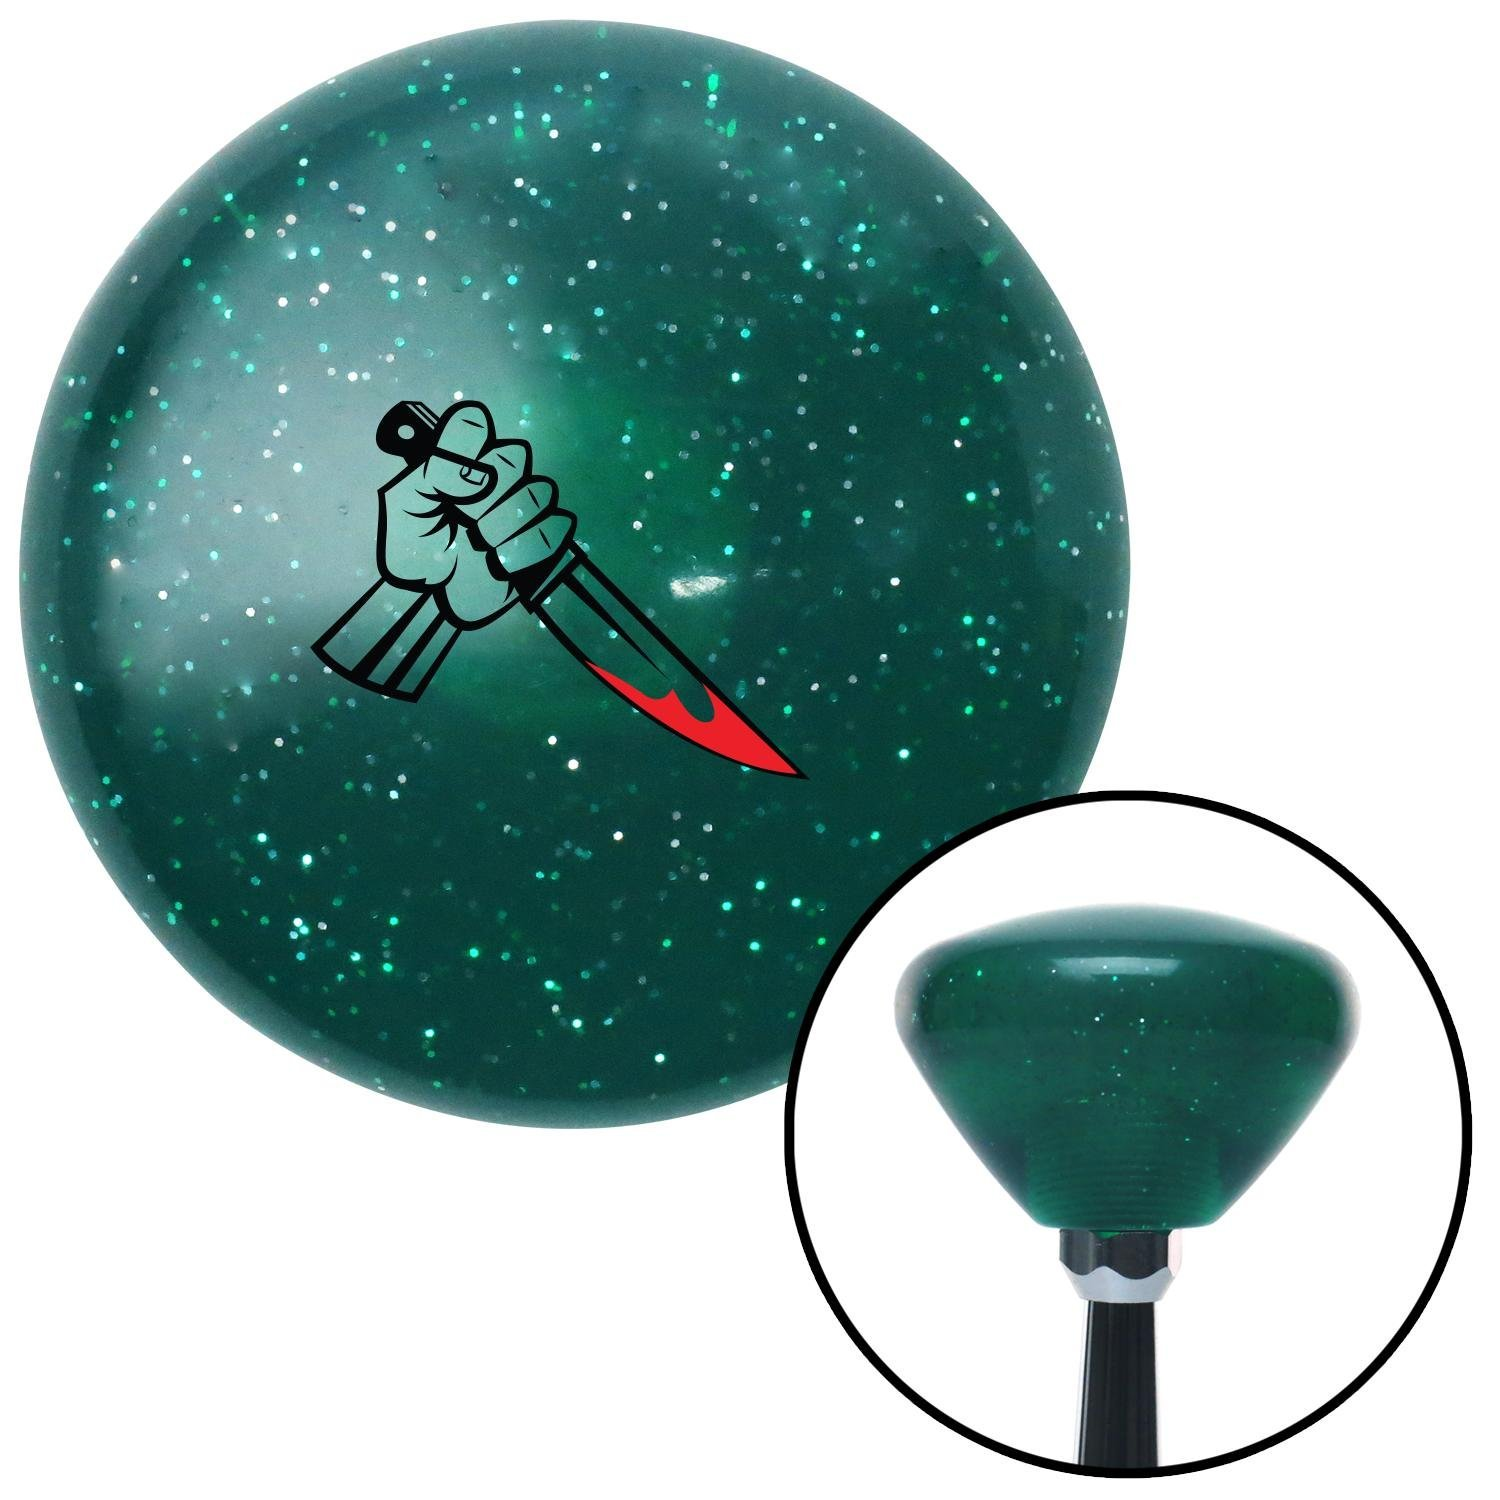 American Shifter 208217 Green Retro Metal Flake Shift Knob with M16 x 1.5 Insert Killer Hand